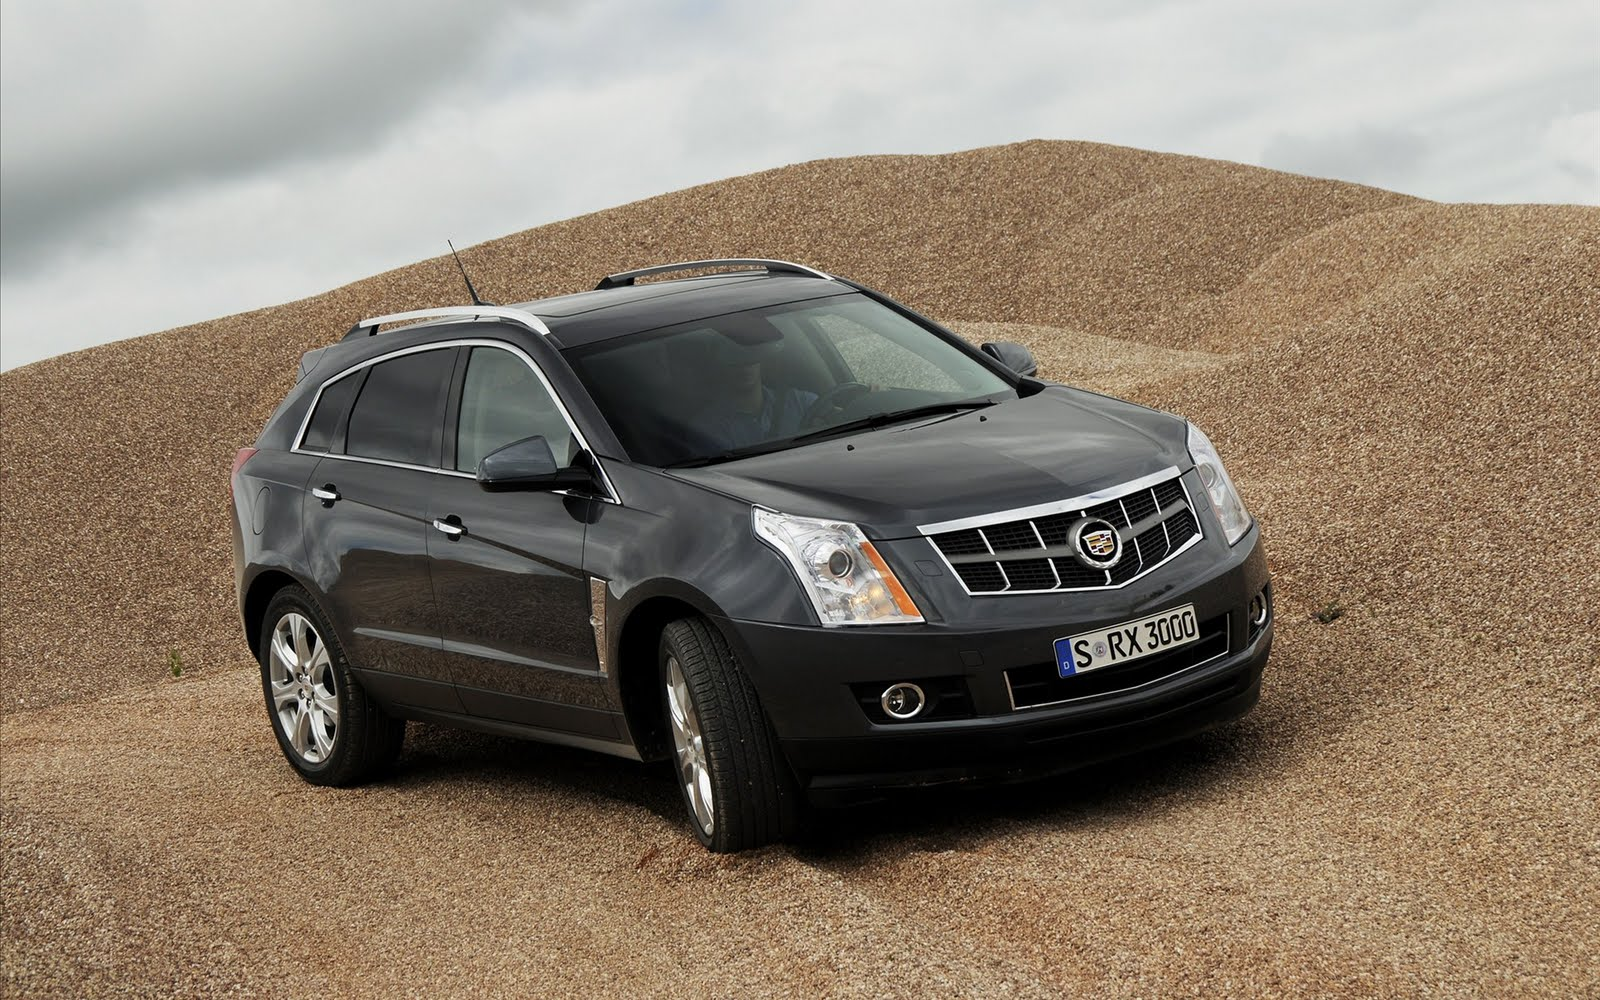 Cadillac Srx 2011 Pictures Beautiful Cool Cars Wallpapers